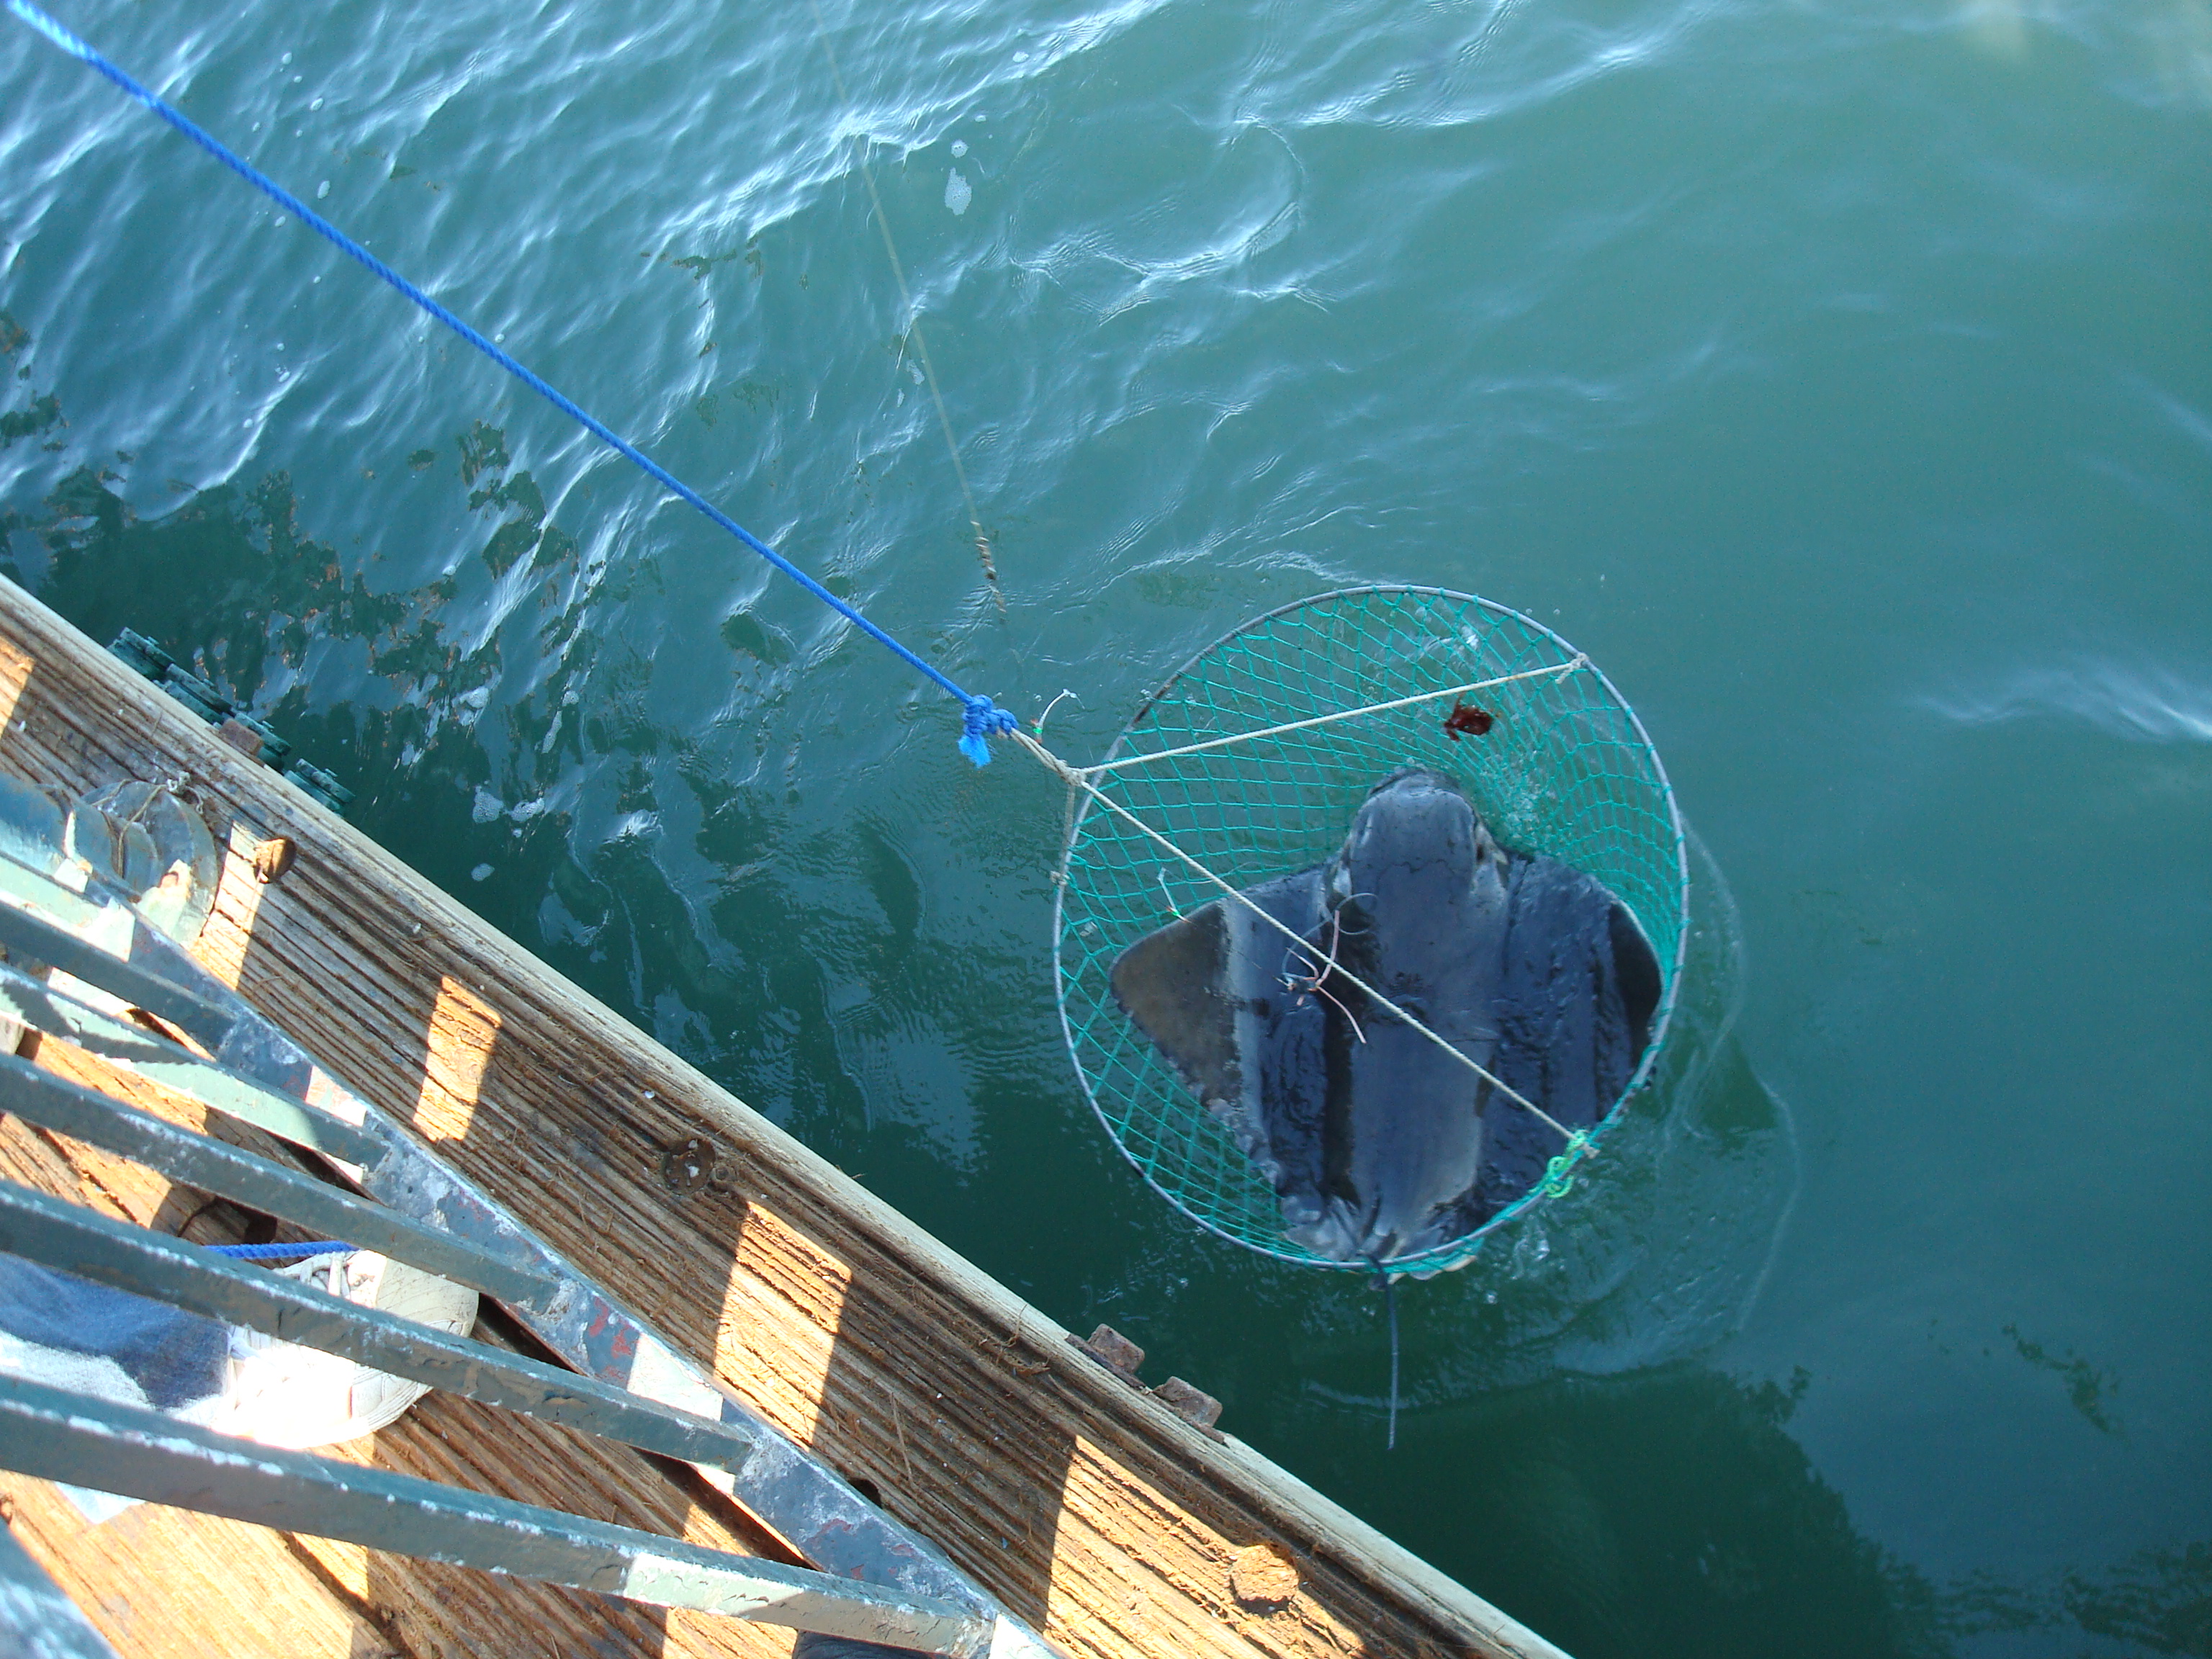 Incubating w friends come hatch learn chat w hosts for Pier fishing net